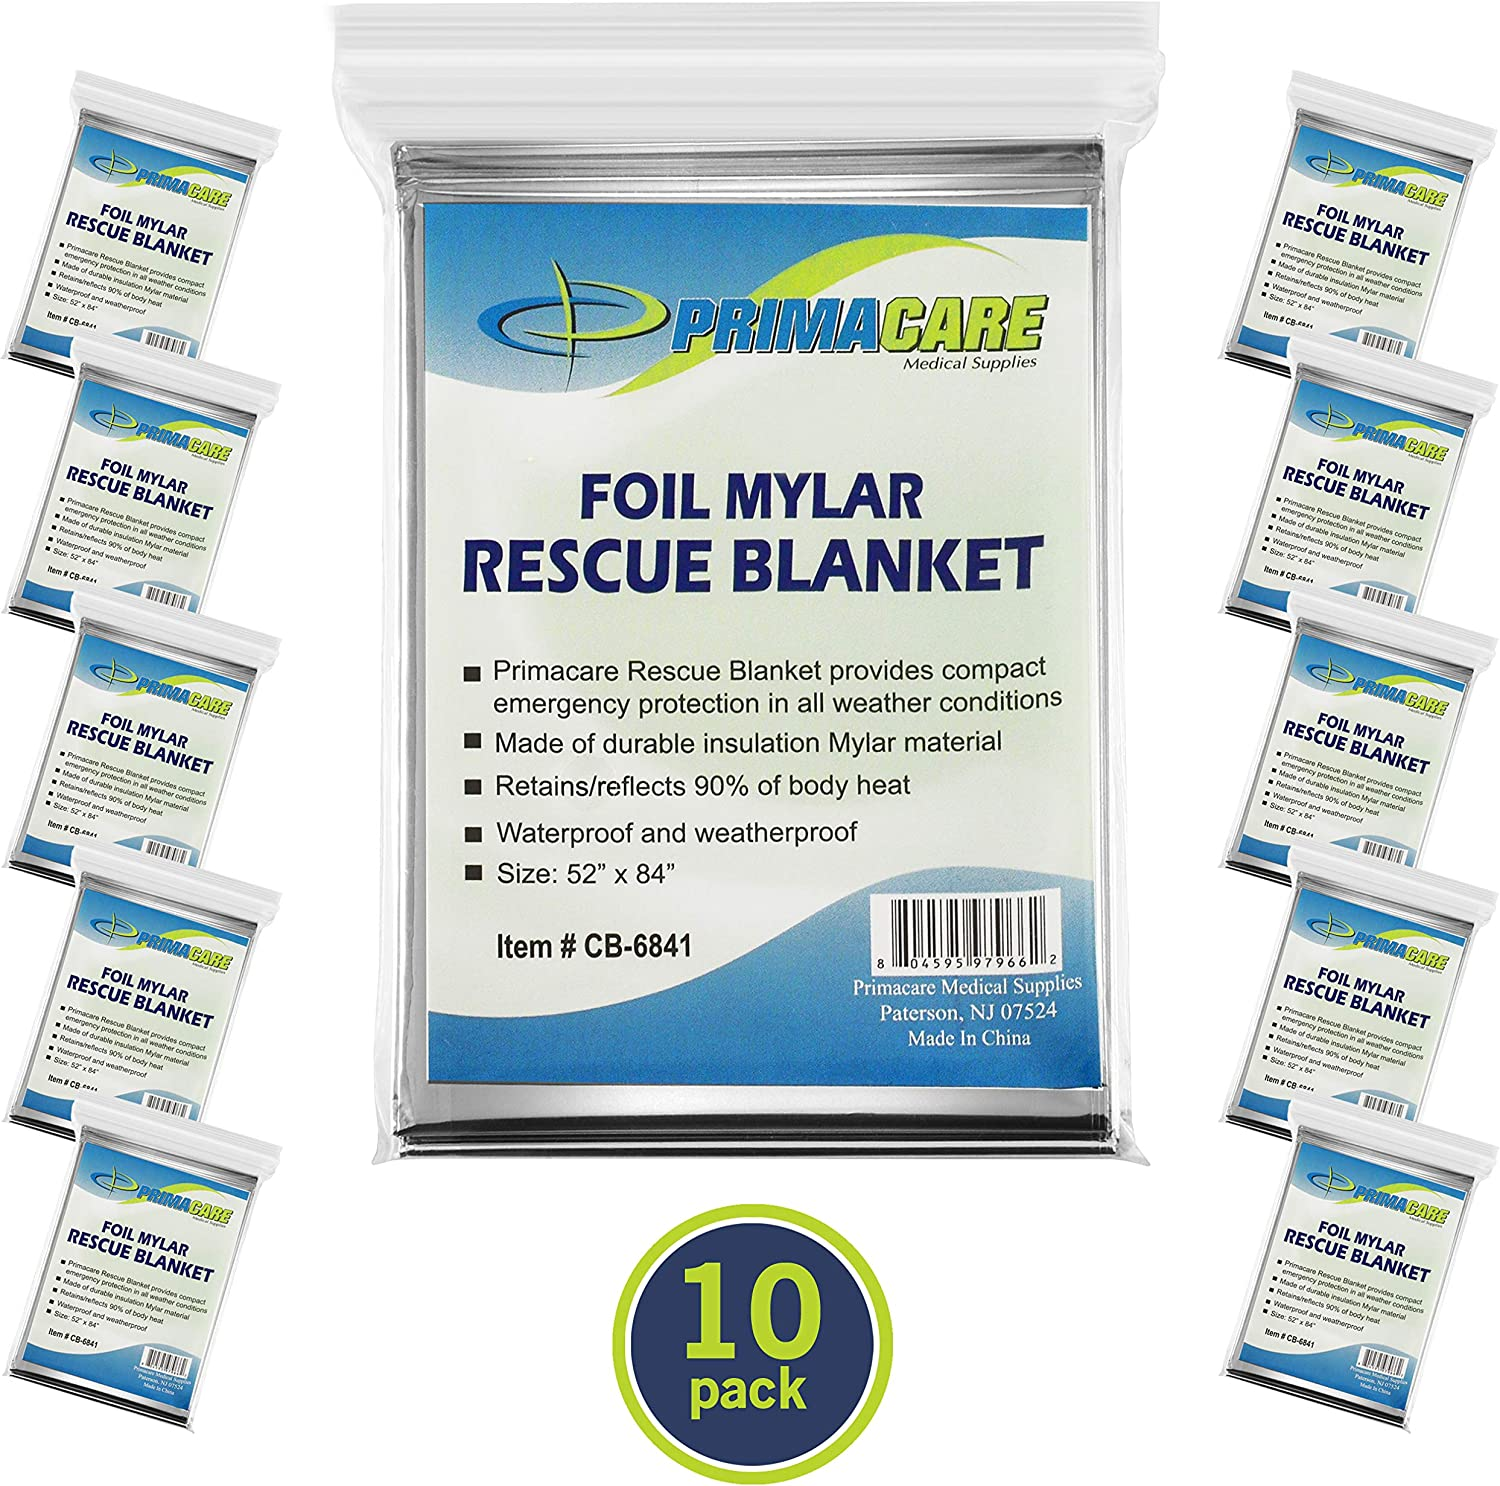 """Primacare HB-10 Emergency Foil Mylar Thermal Blanket (Pack of 10), 52"""" Length x 84"""" Width, Silver: Health & Personal Care"""